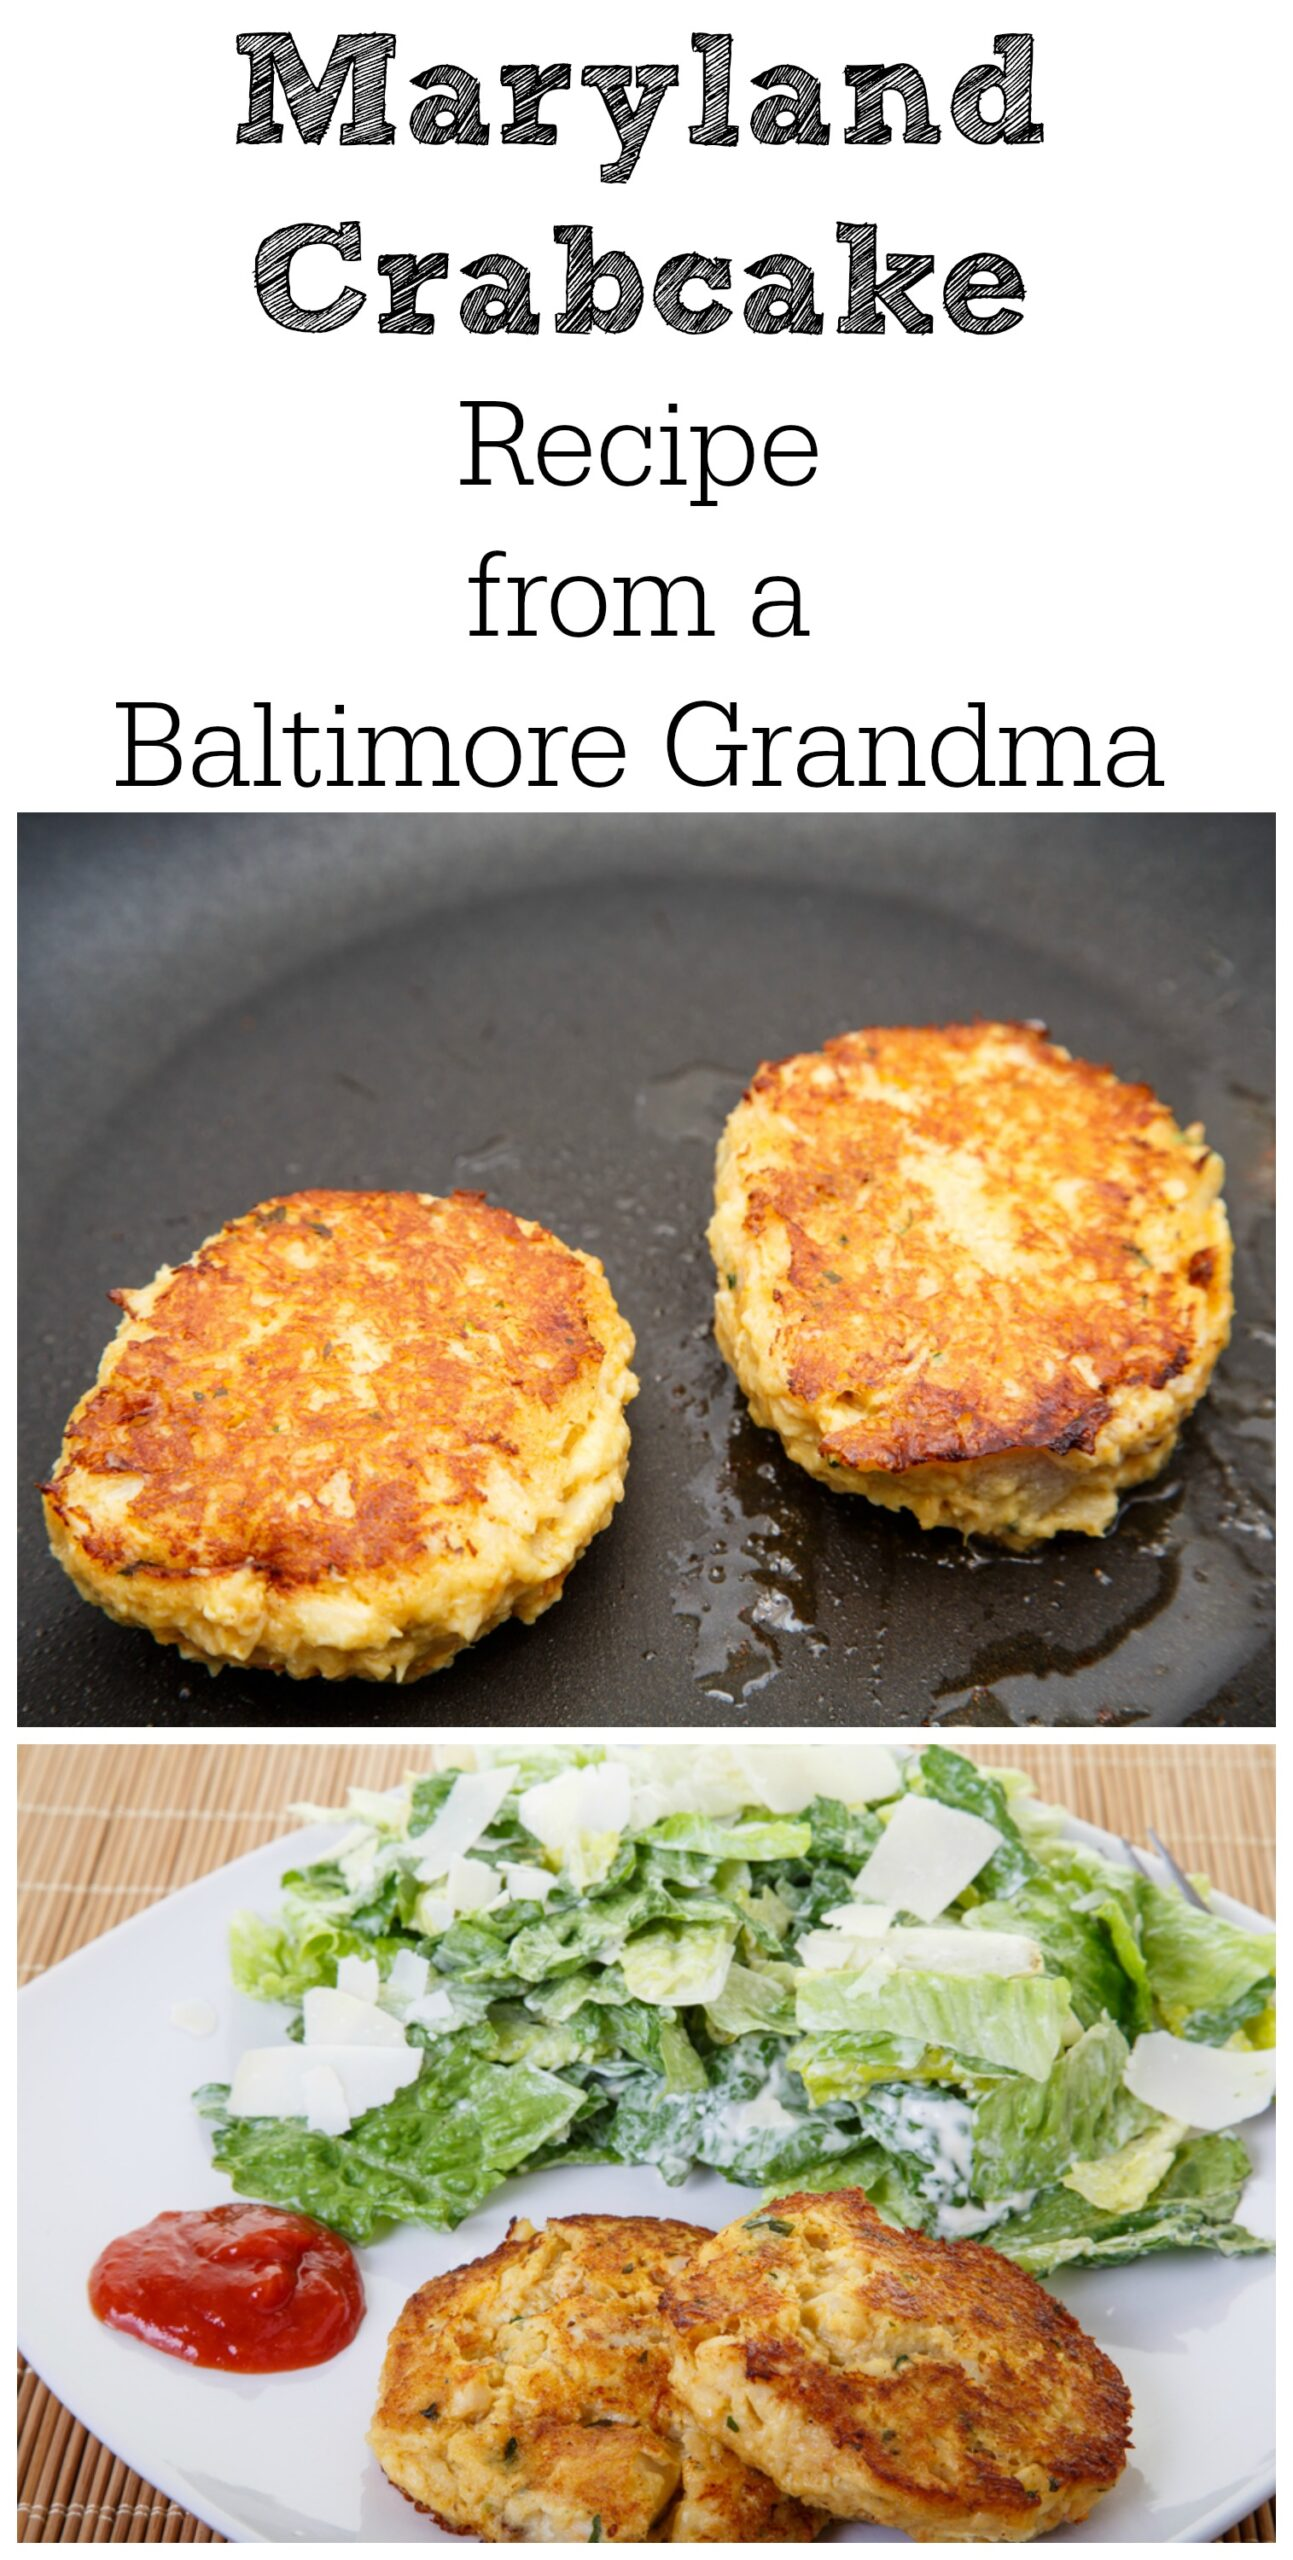 These are real Maryland crab cakes, straight out of a grandmother's kitchen. This is a great recipe for a quick and easy dinner when you want something light! They also make great sandwiches.